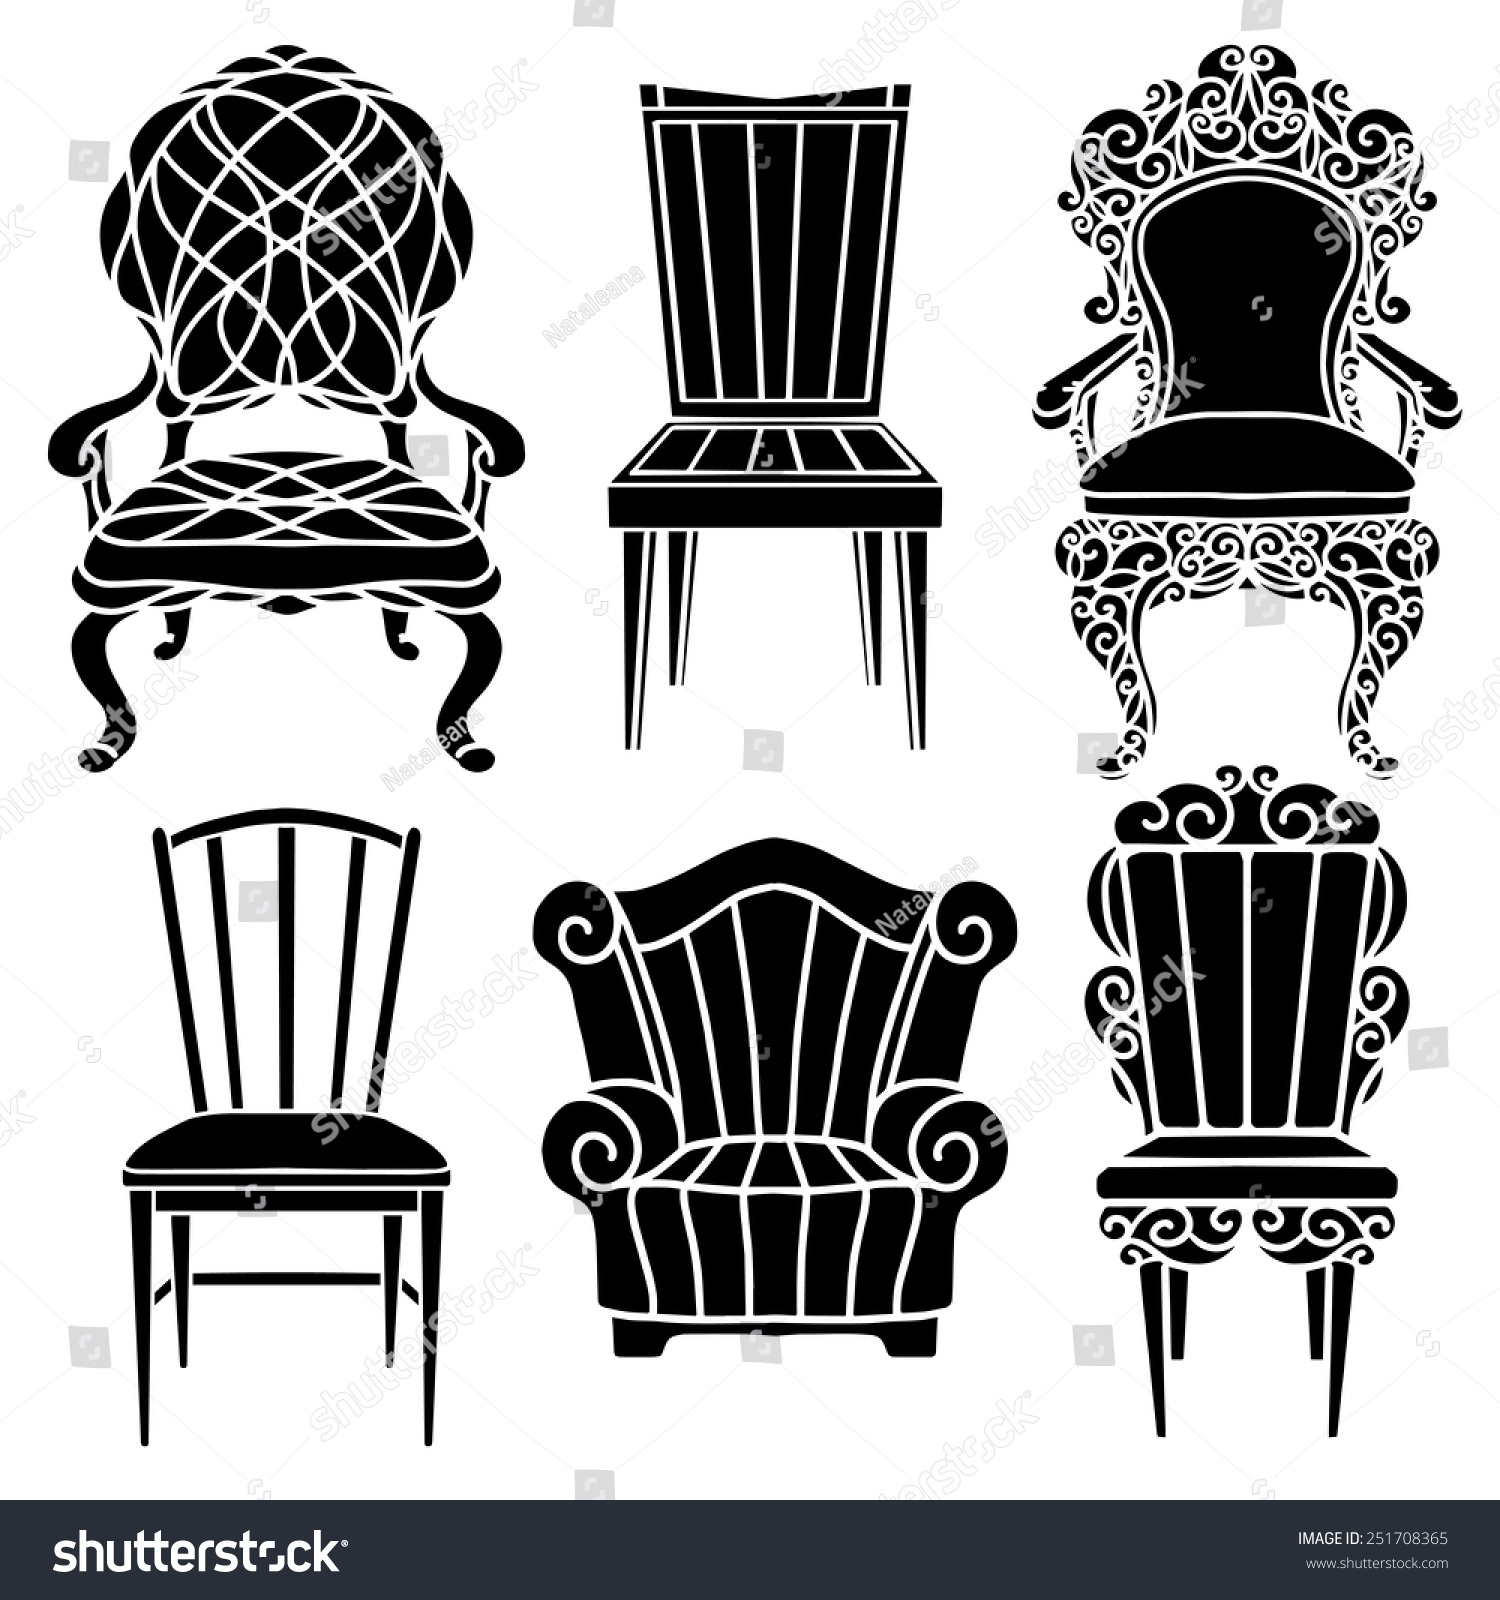 Antique chair silhouette - Vintage Furniture Set Chair Armchair Throne Black Silhouettes Isolated On A White Background